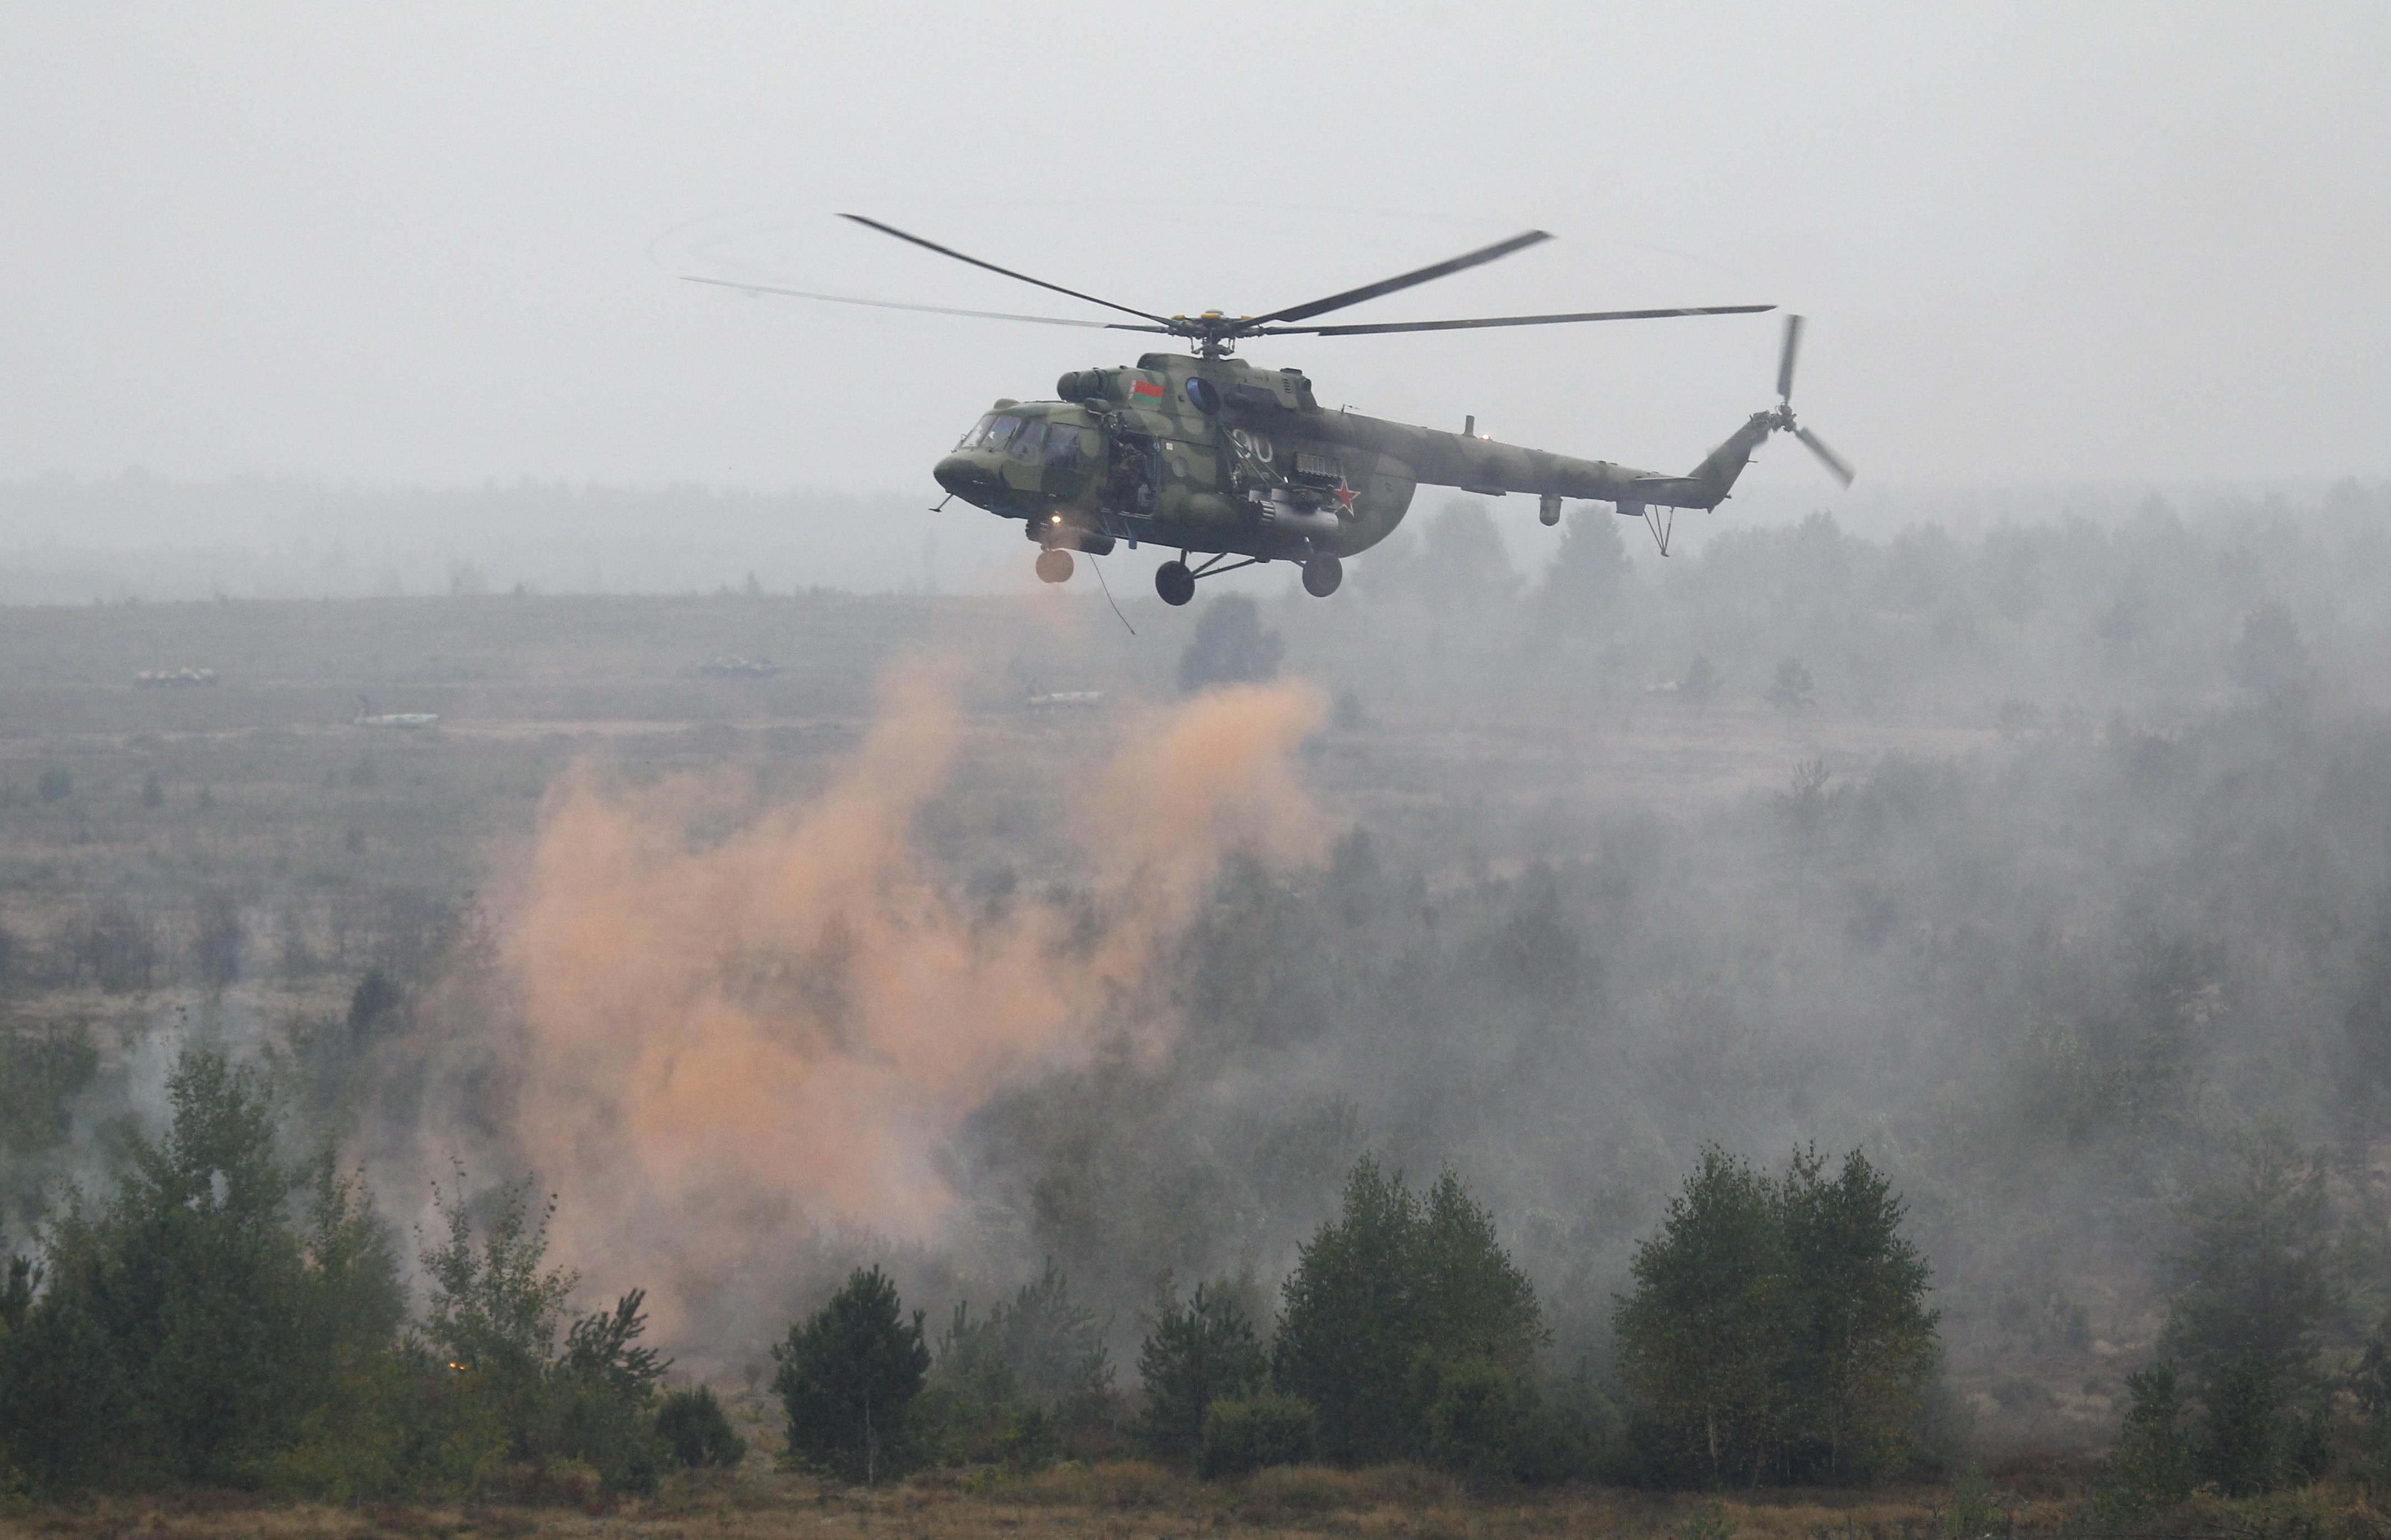 A Belarussian Mi-8 helicopter flies above a firing range during the Zapad-2017 war games, held by Russian and Belarussian servicemen, outside the town of Ruzhany in Belarus, September 17, 2017.